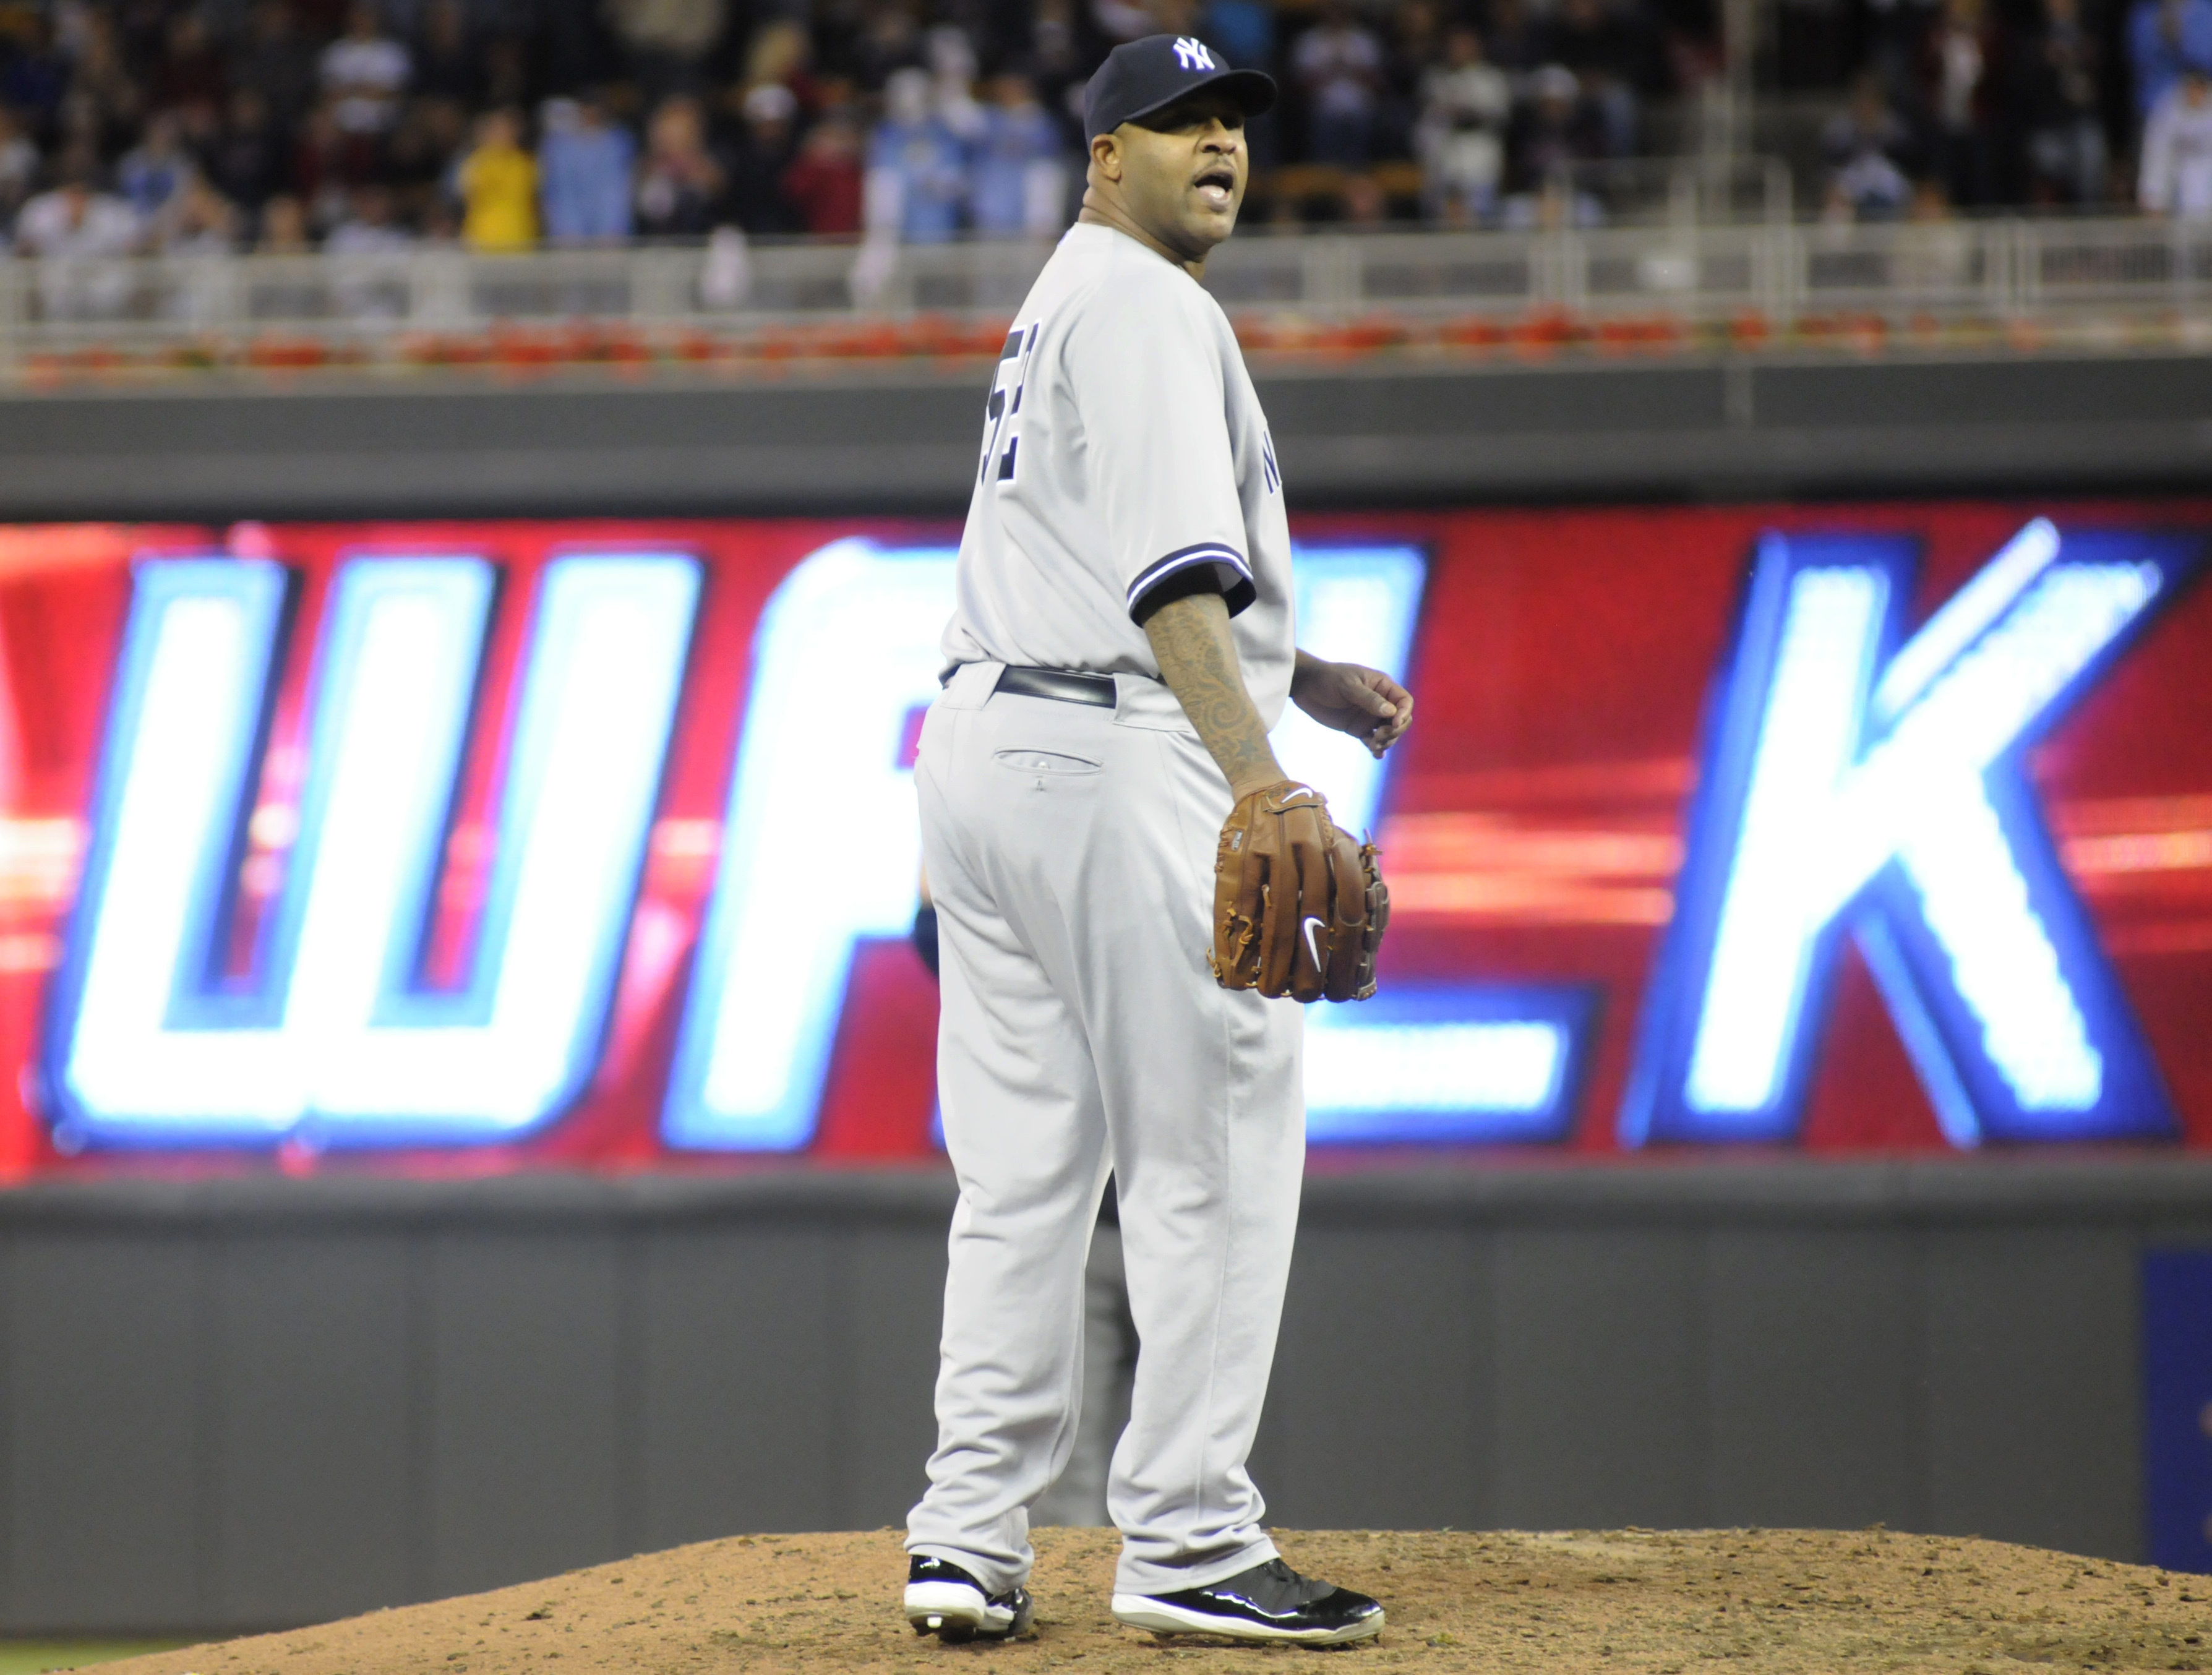 MINNEAPOLIS, MN - OCTOBER 6: CC Sabathia #52 of the New York Yankees reacts to giving up a walk to tie the game in the sixth inning during game one of the ALDS against the Minnesota Twins on October 6, 2010 at Target Field in Minneapolis, Minnesota. (Phot